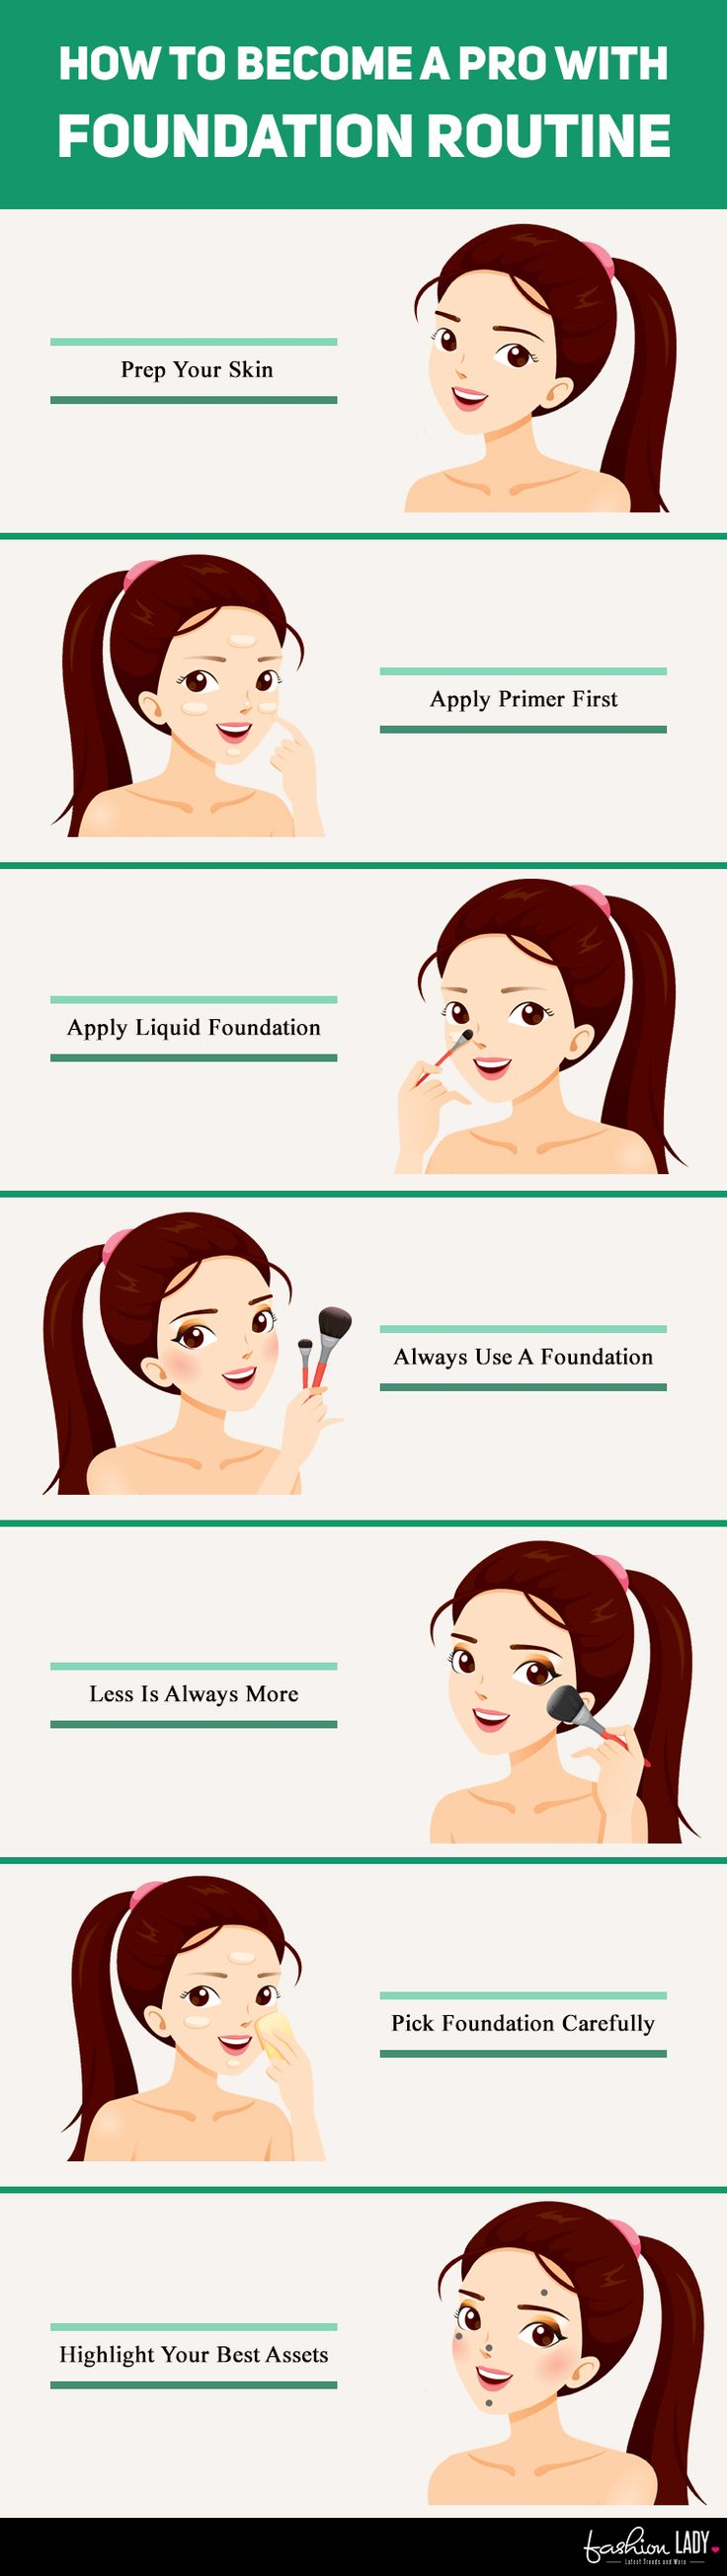 How To Become A Pro With Foundation Routine